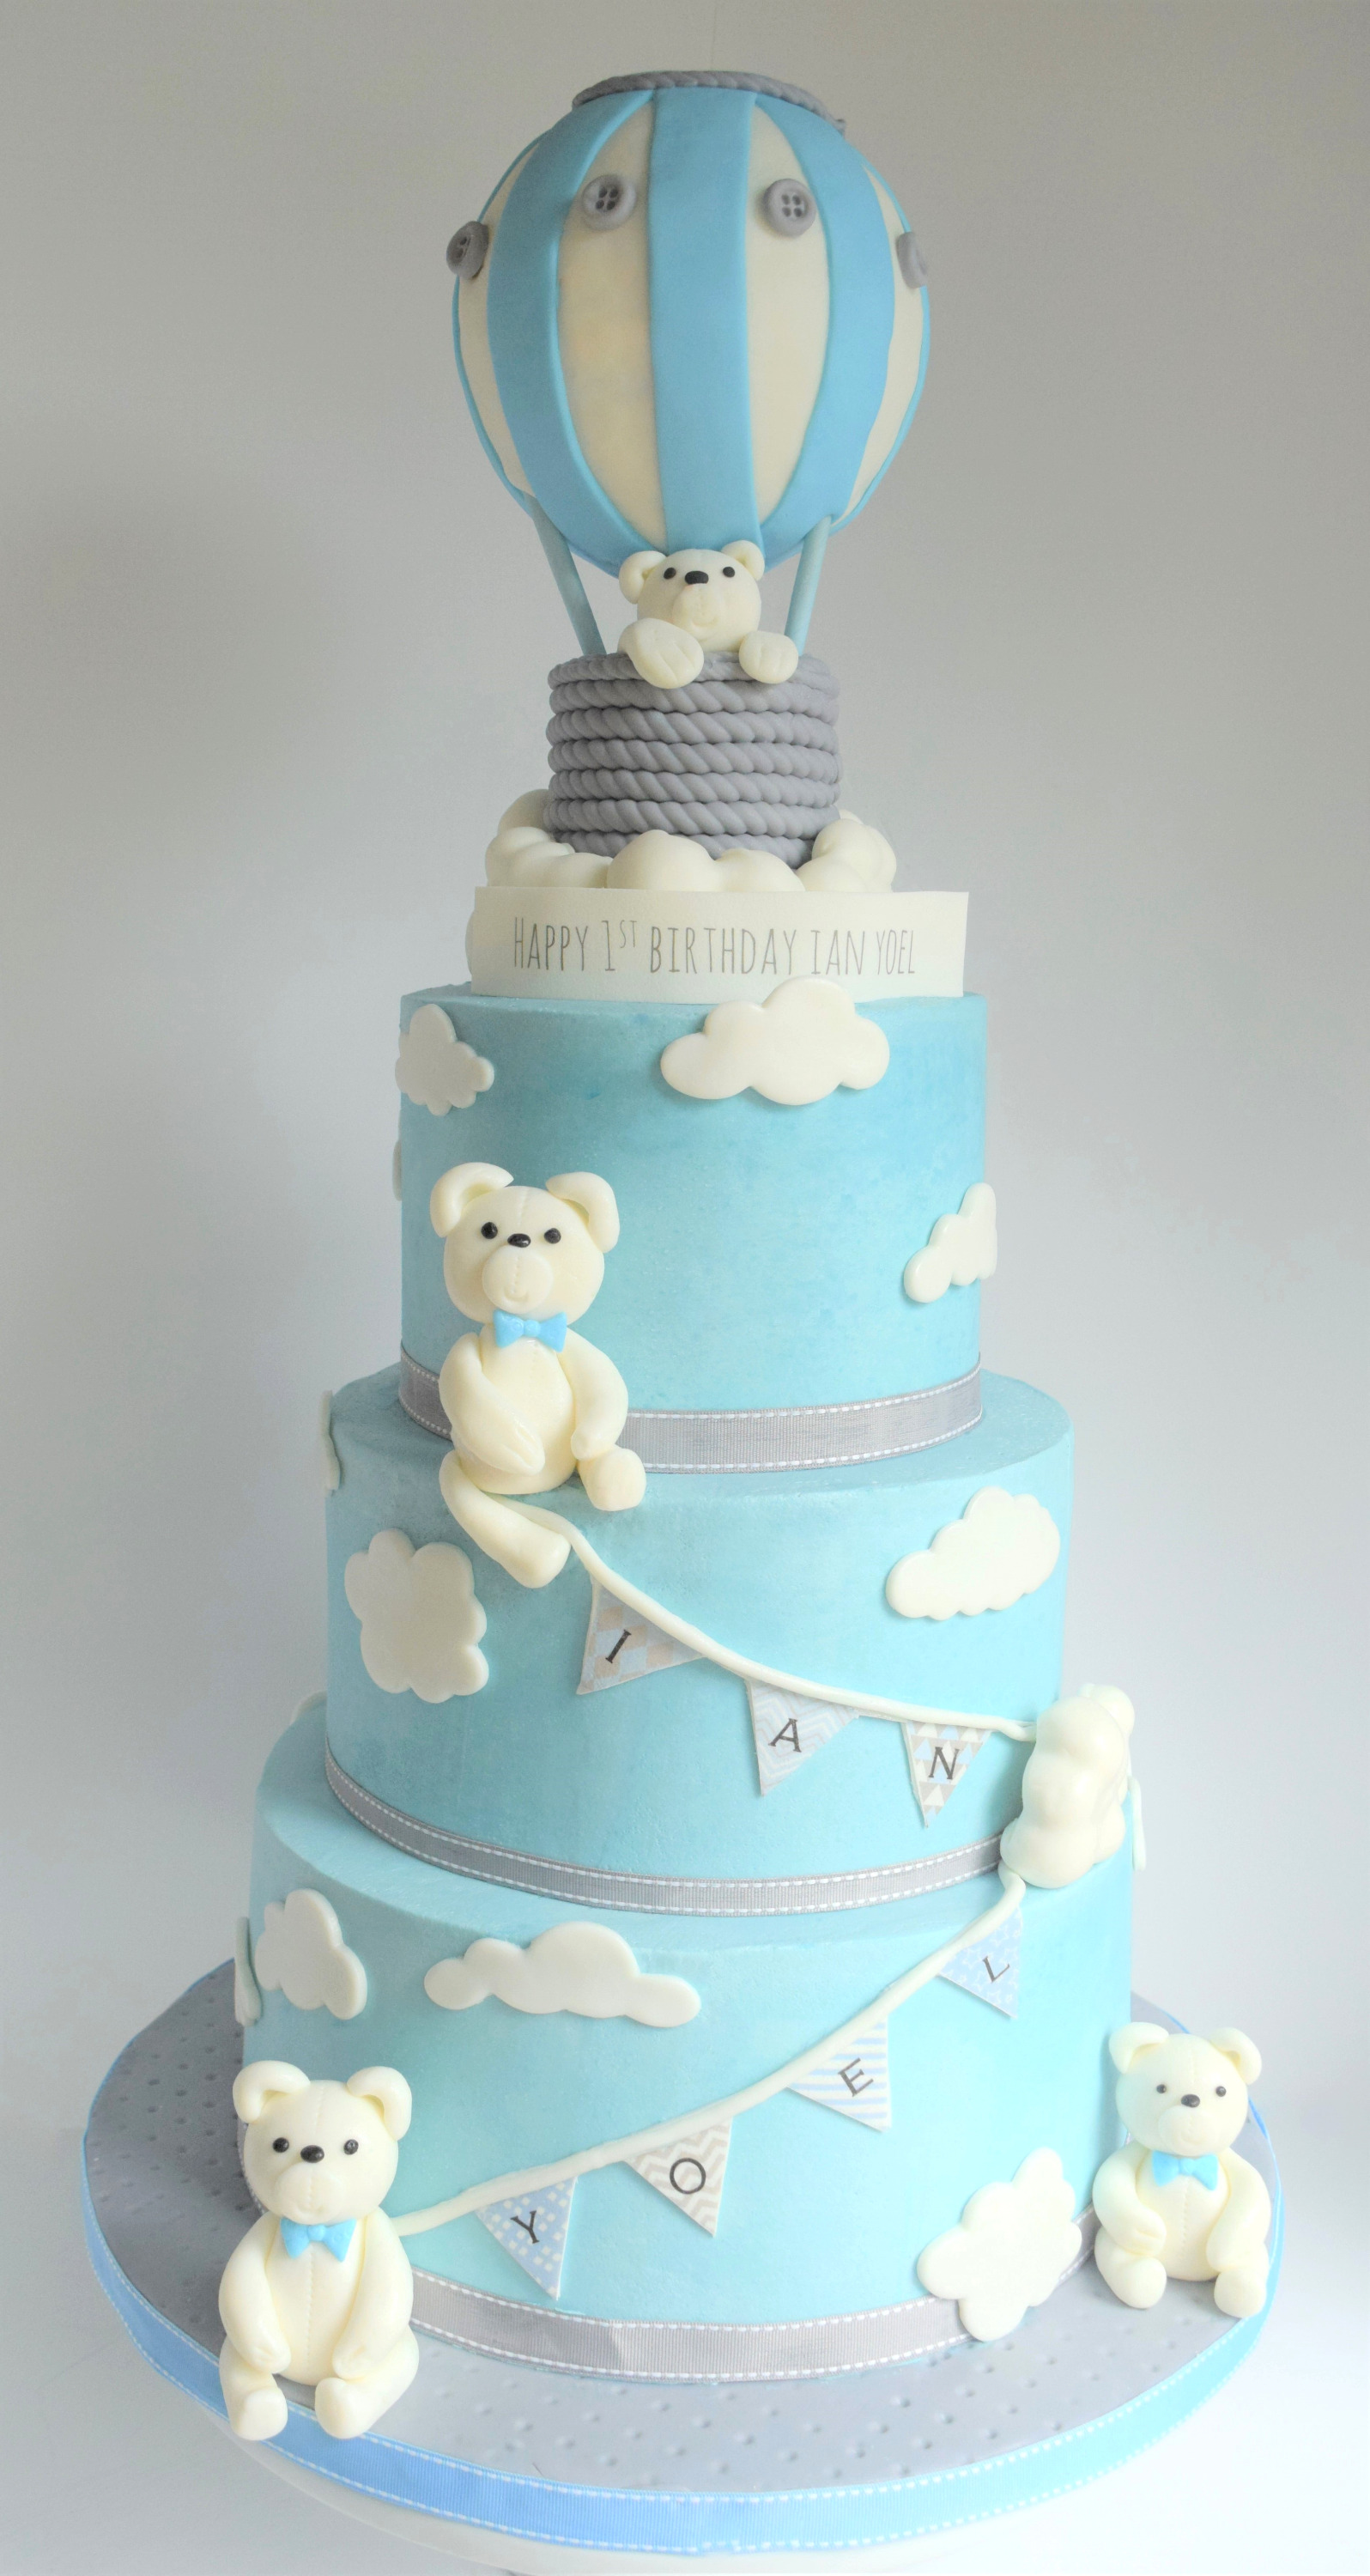 Balloon & Bears 1st Birthday Cake